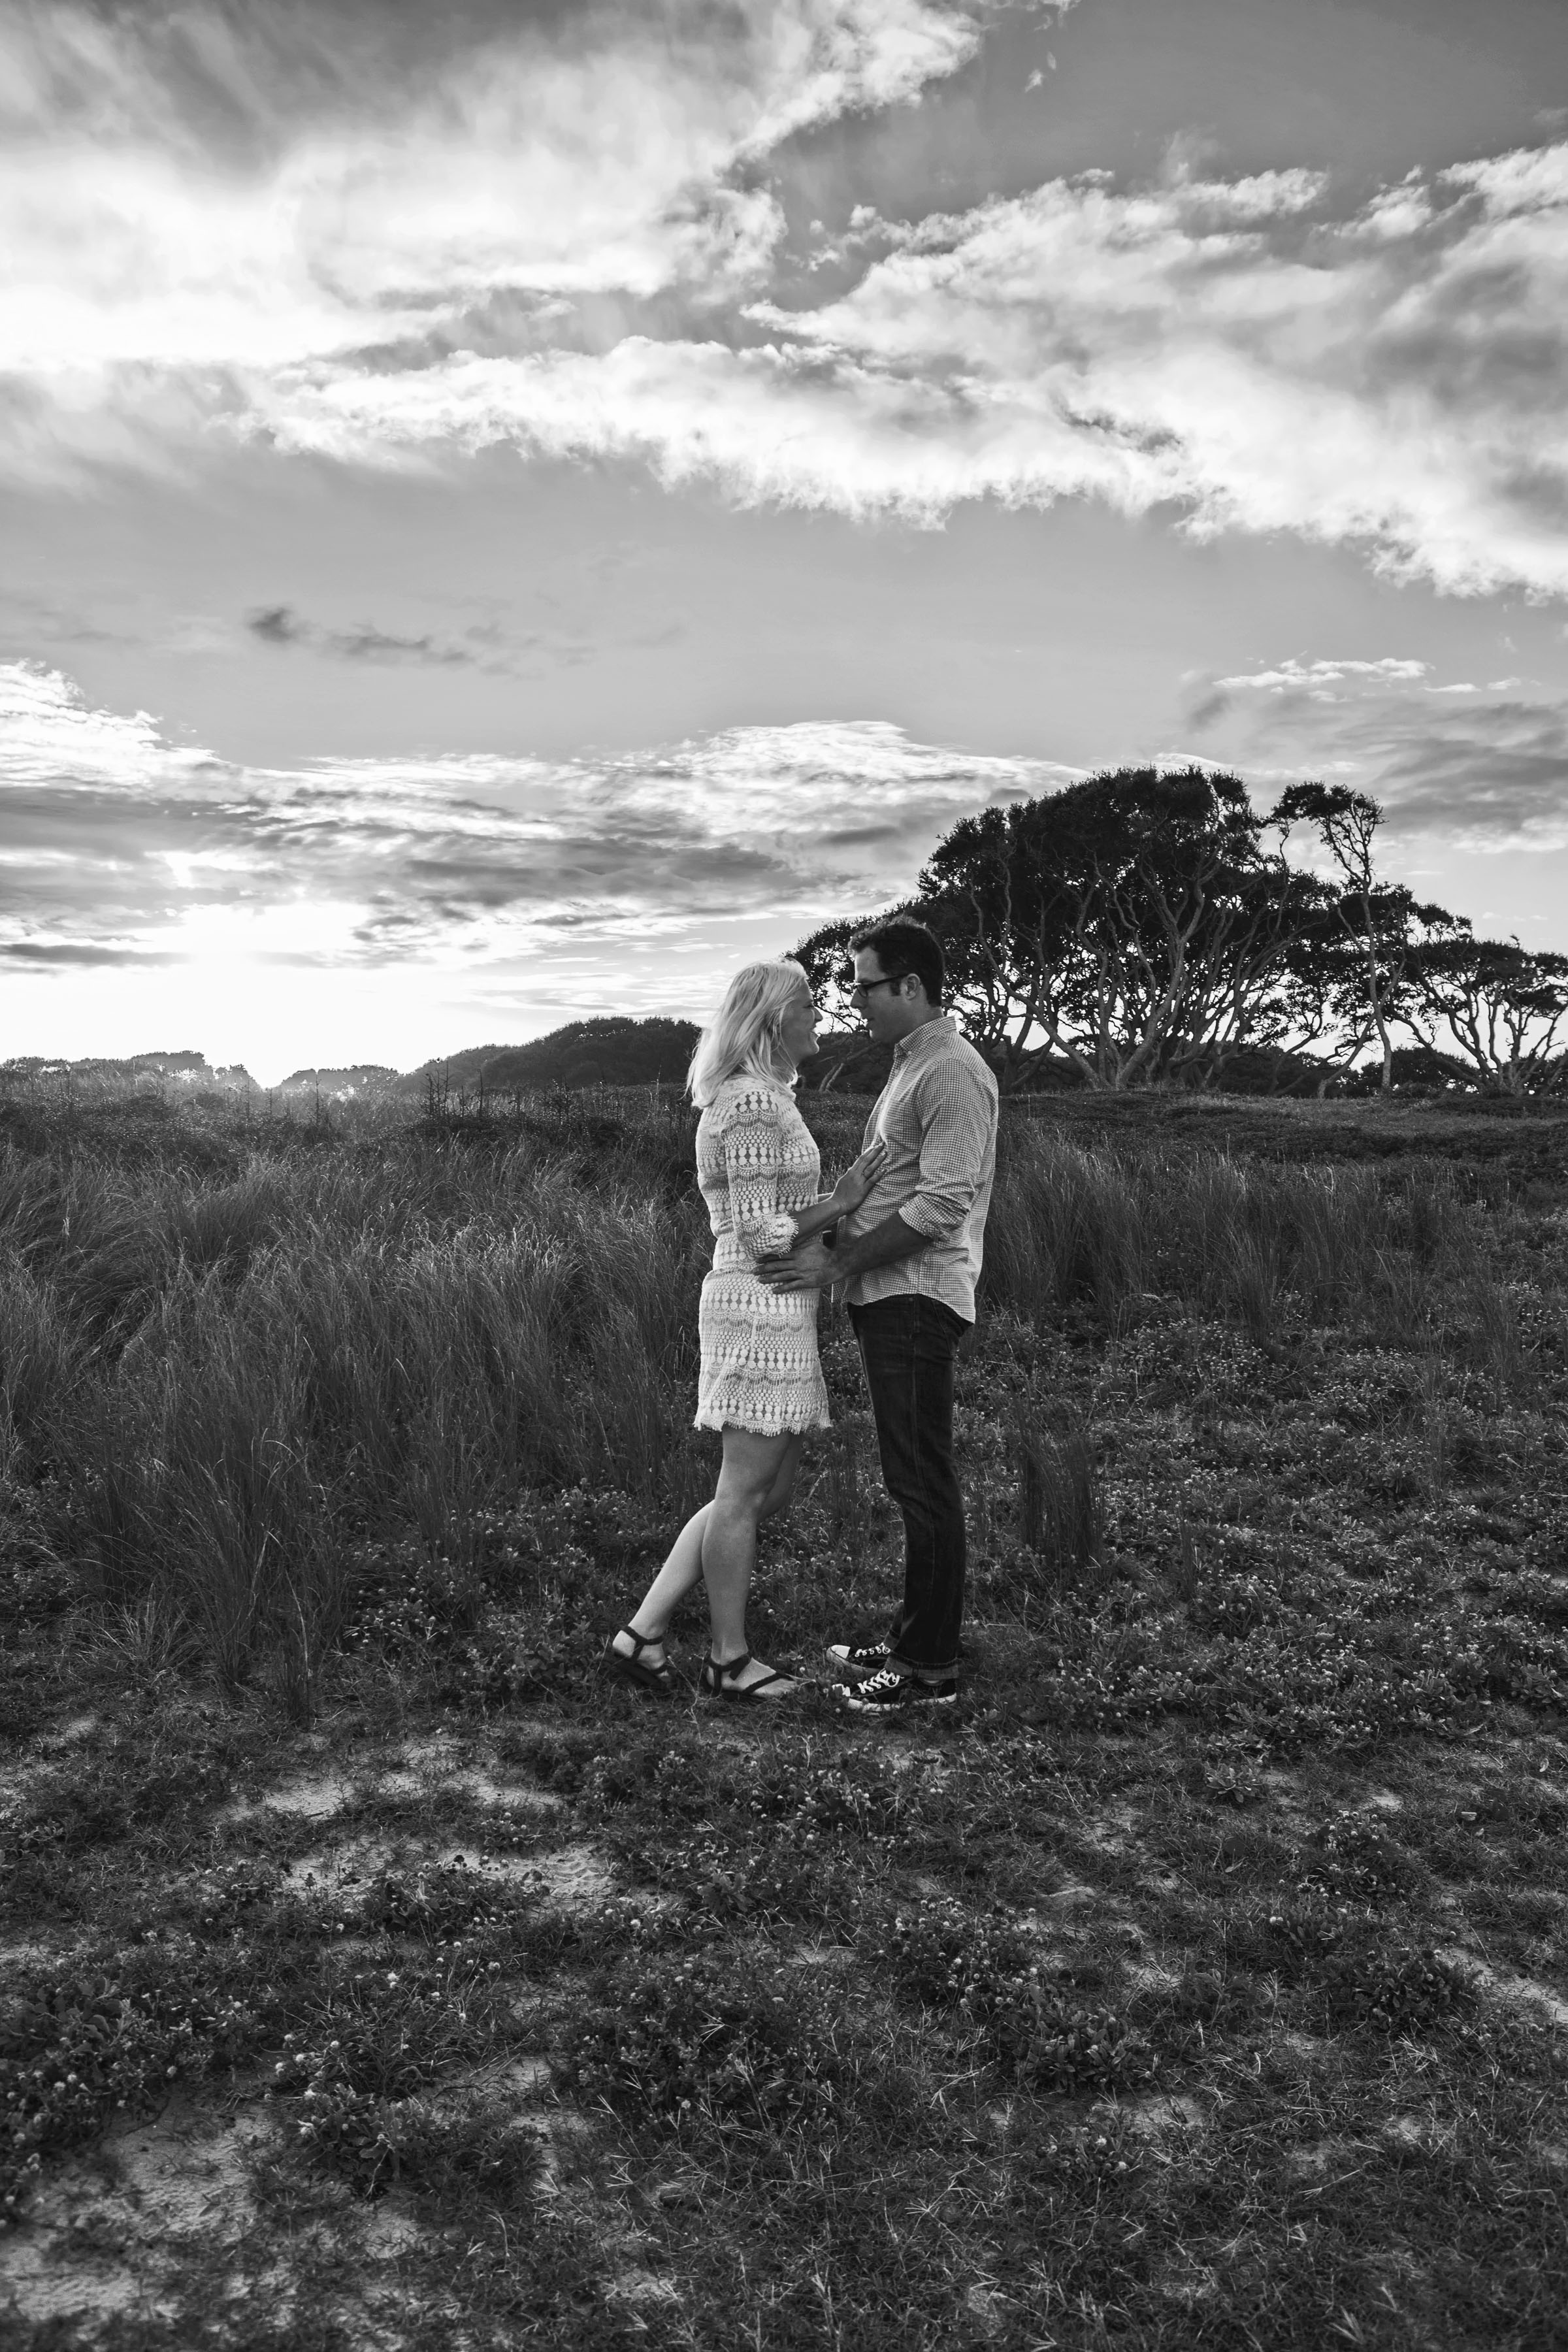 Fort_Fisher_Photographer_Engagement_Tiffany_Abruzzo_Photography_23.jpg